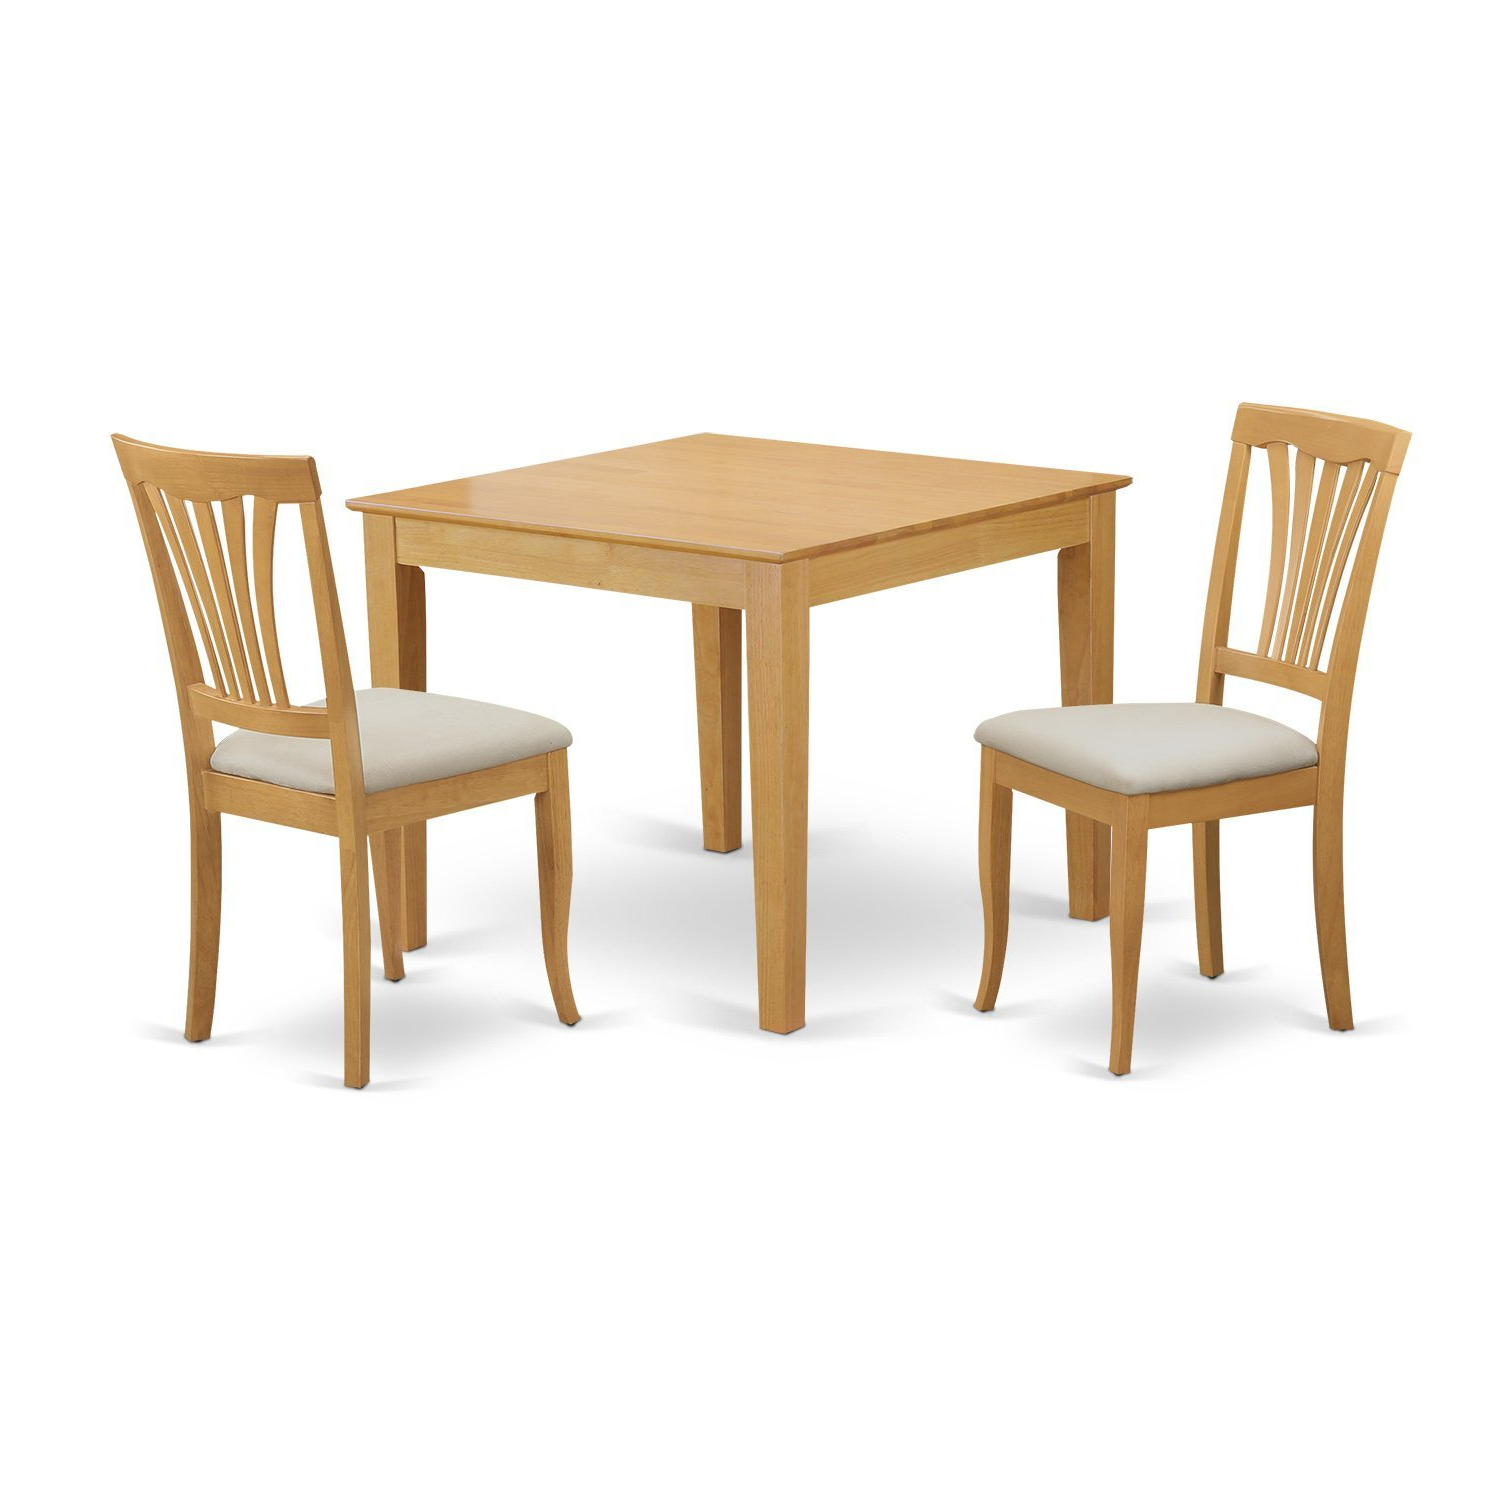 3 Pieces Dining Tables And Chair Set Regarding Current East West Furniture Oxav3 Oak C 3 Piece Dining Table For Small Spaces And 2  Chairs Set (Gallery 9 of 30)